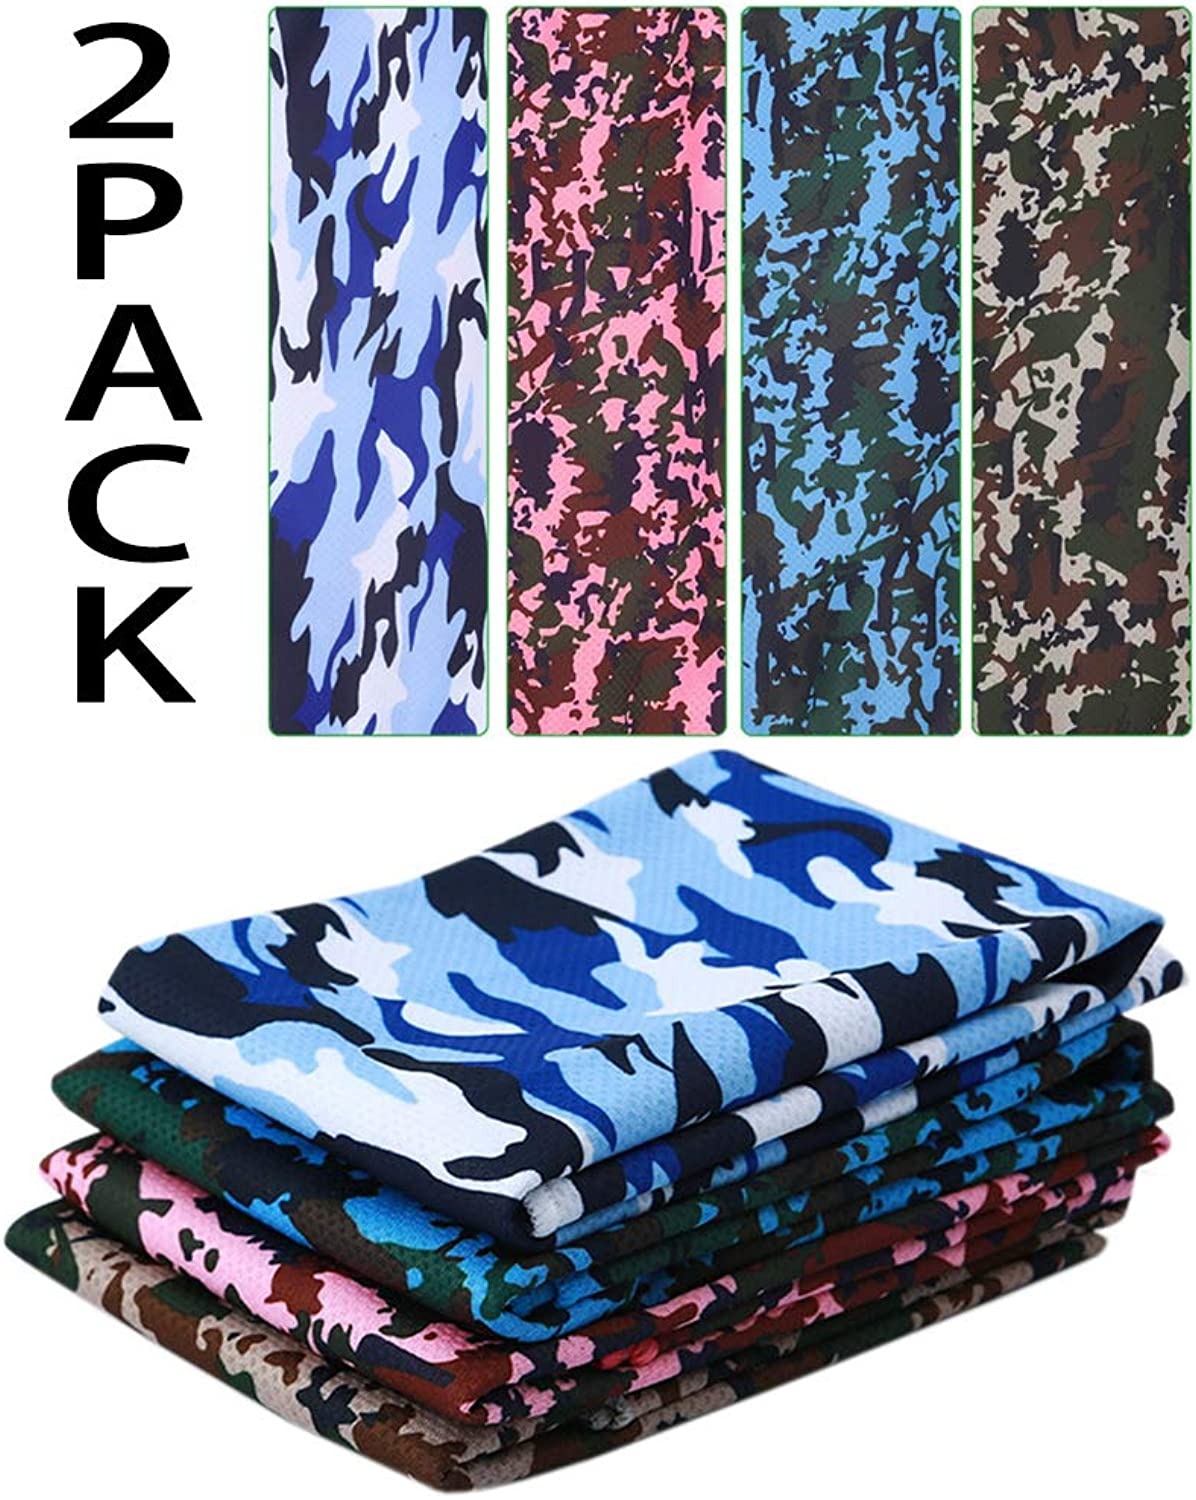 CS&BEAUTY 2 Pack Cooling Towel,40 x12 ,Soft Breathable Stay Cool Microfiber Towel for Yoga, Sport, Running, Gym, Workout,Camping, Fitness, Workout & More Activities